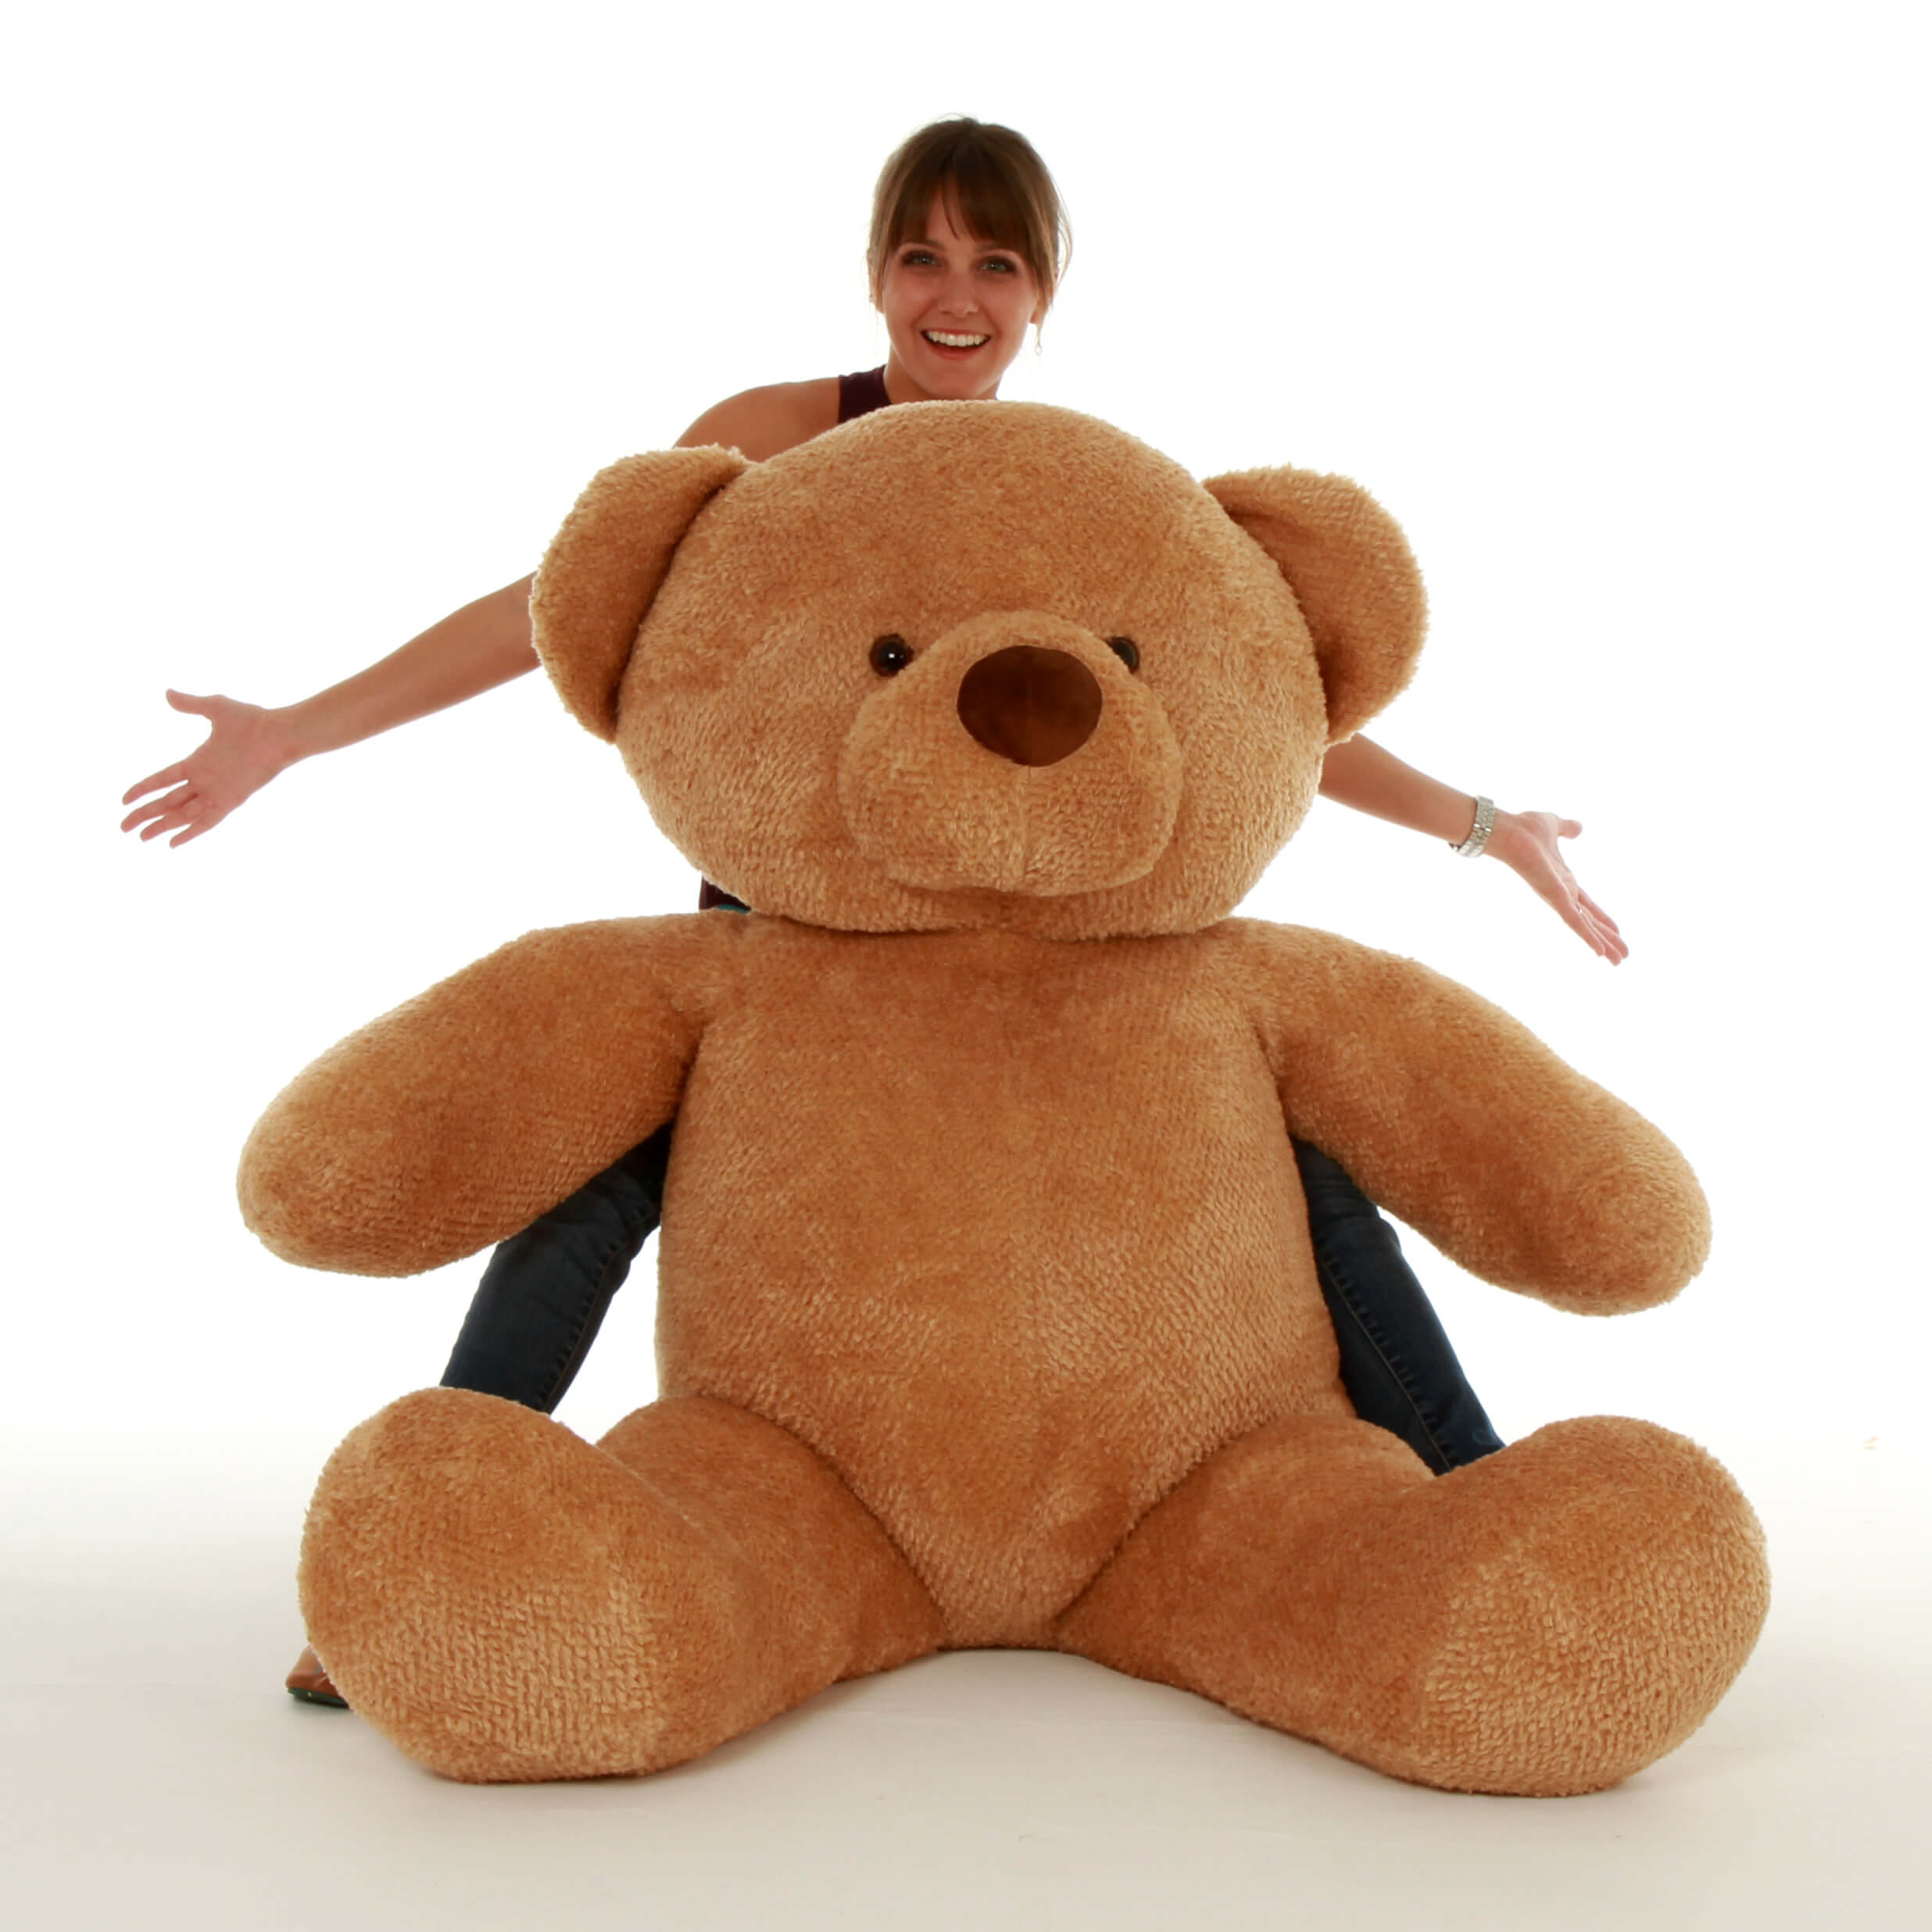 cutie-chubs-is-an-amber-giant-stuffed-animal-teddy-bear-that-measures-55-1.jpg